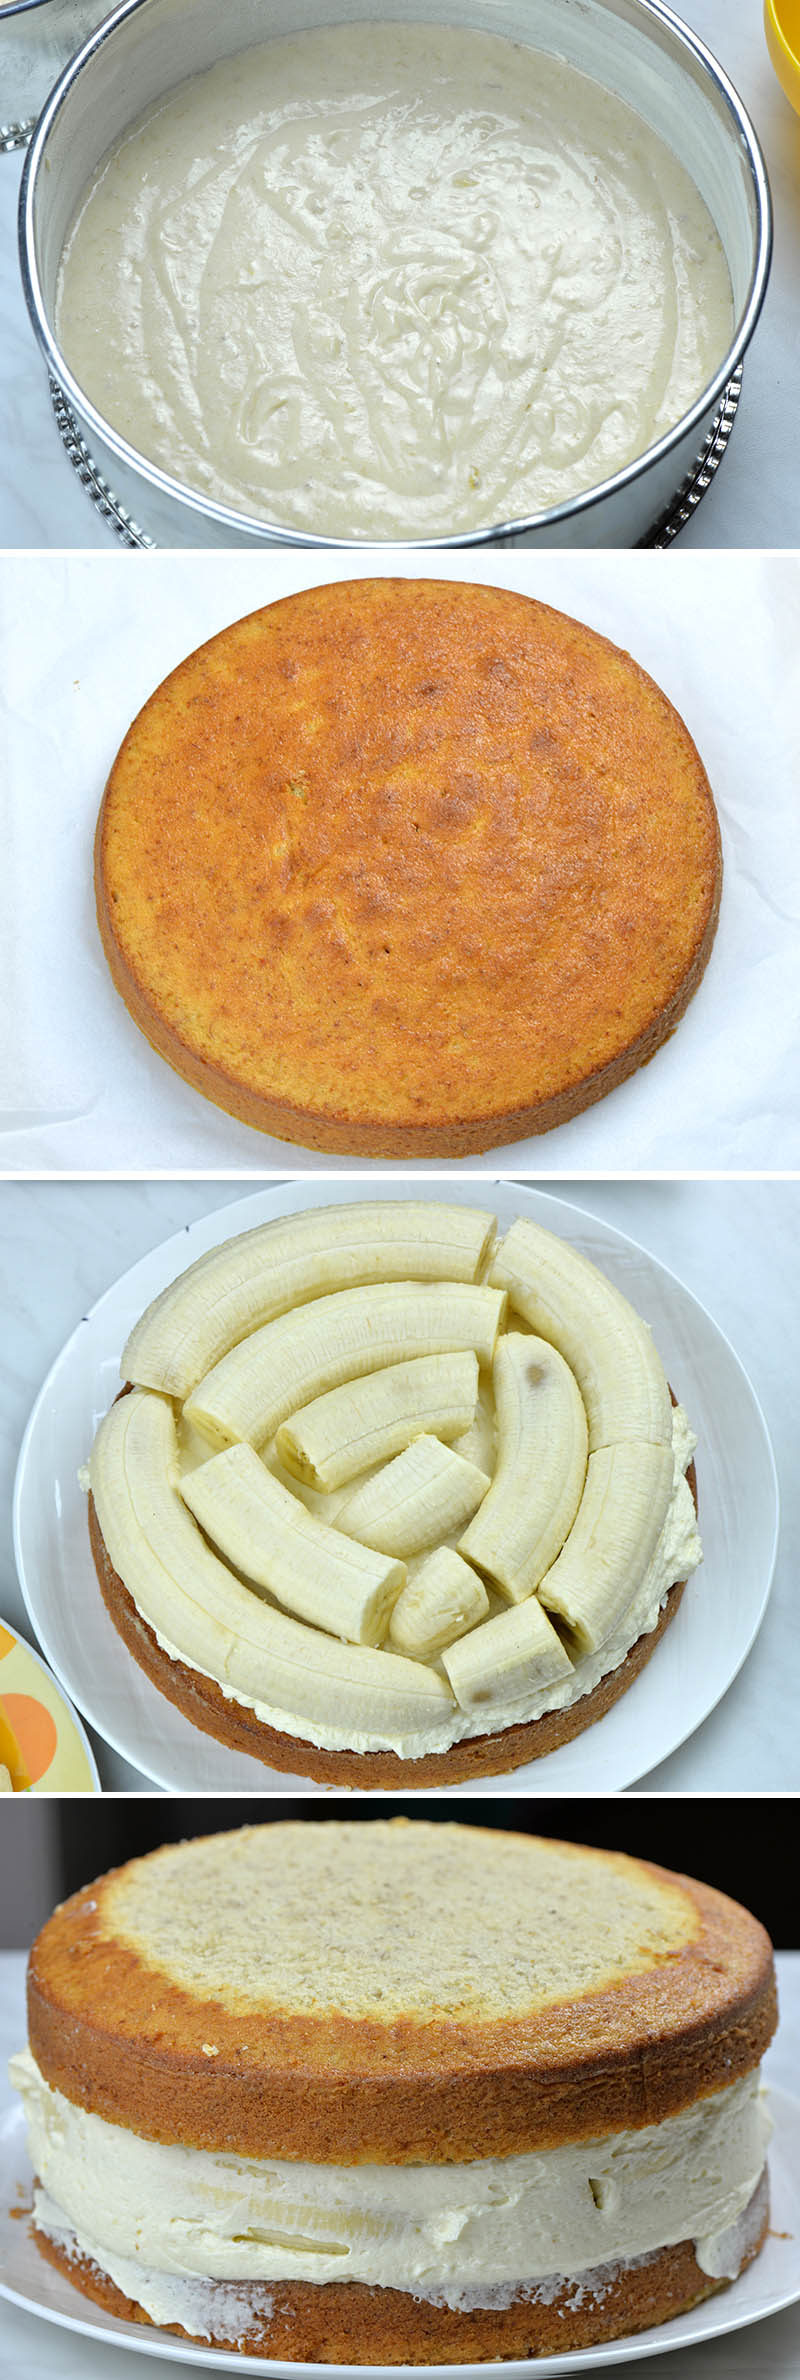 Steps of combining two cake layers, cream cheese frosting and bananas.